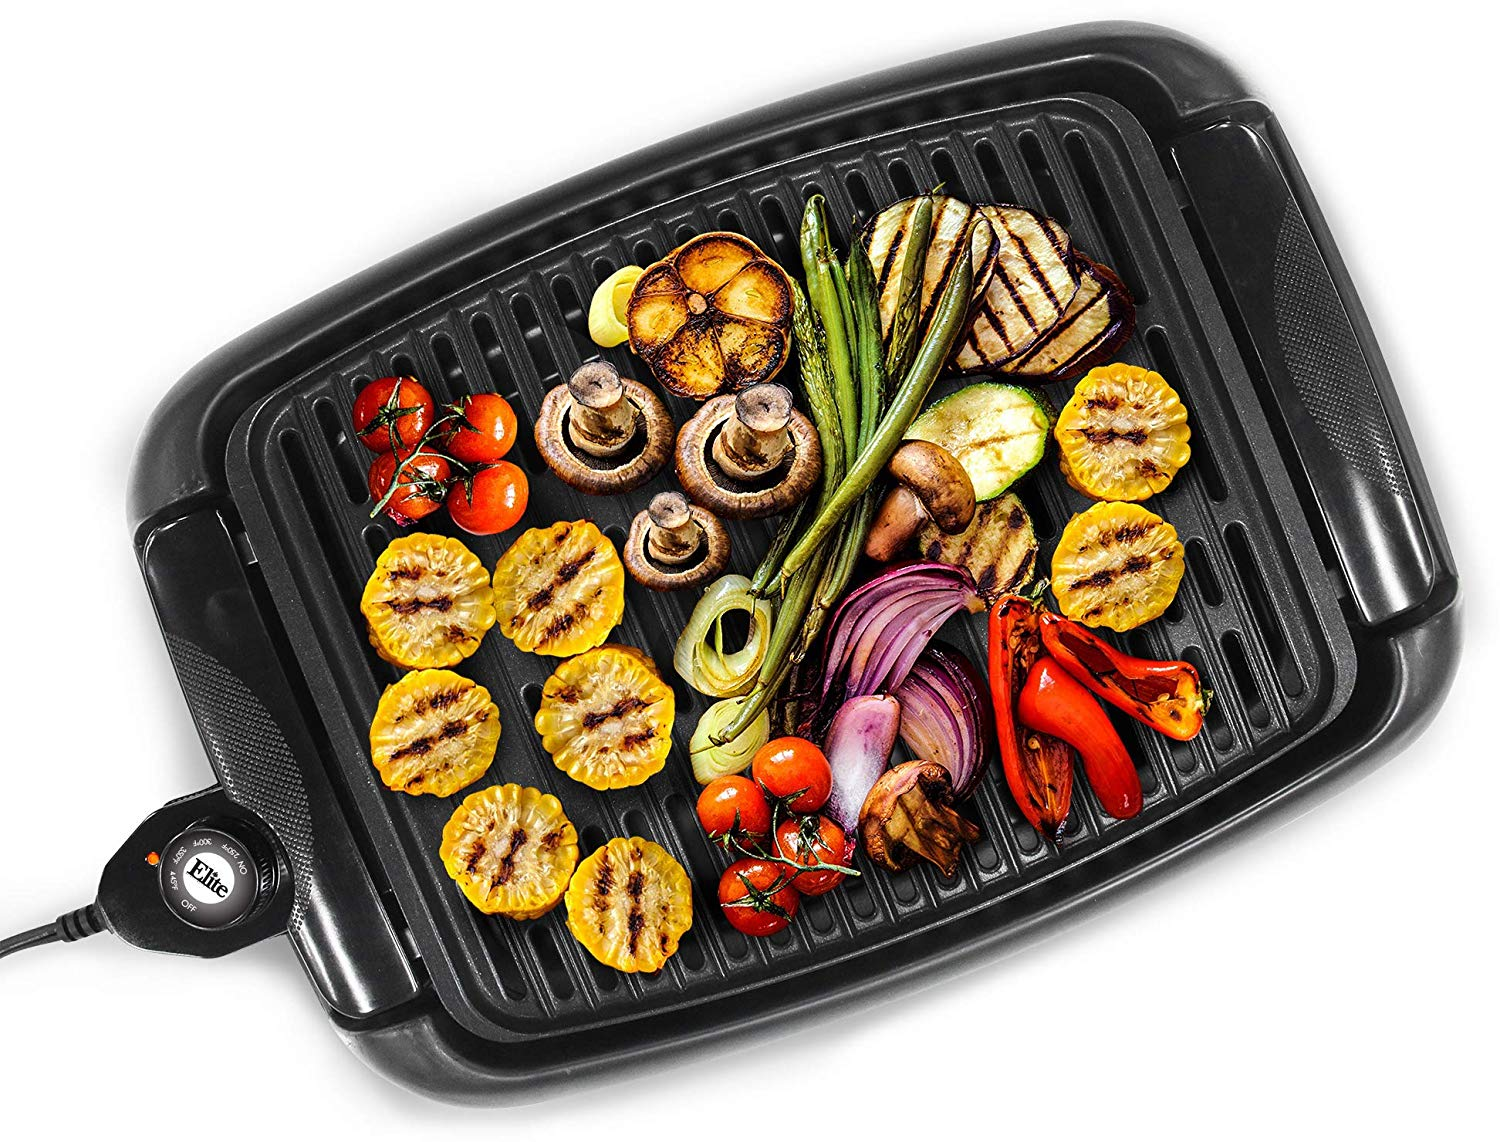 Maxi-Matic EGL-3450 Indoor Electric Non-Stick Grill